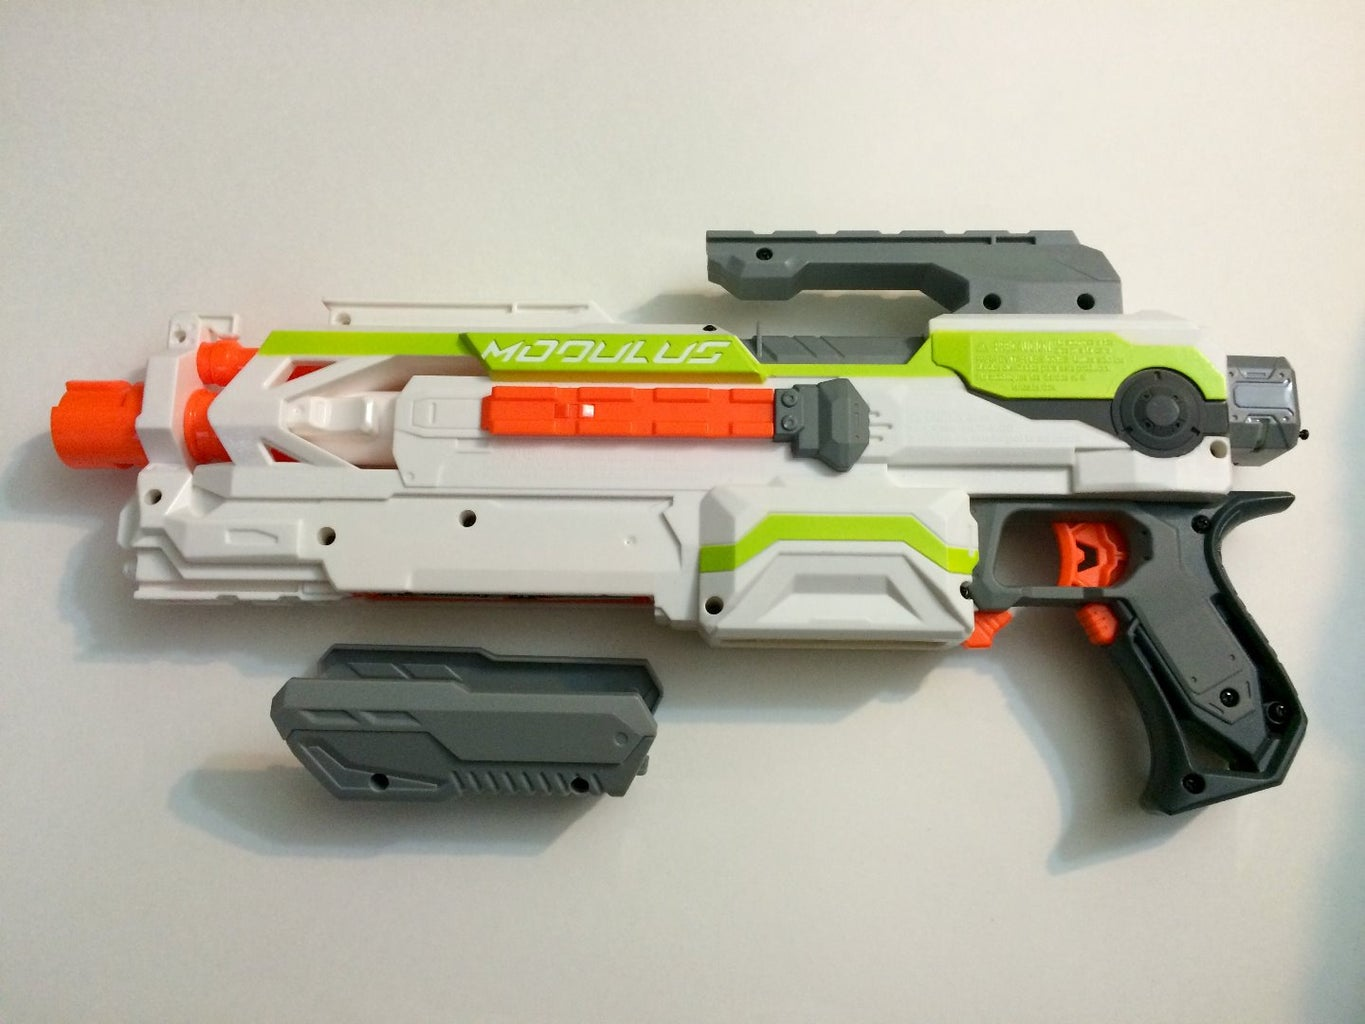 Opening the Blaster